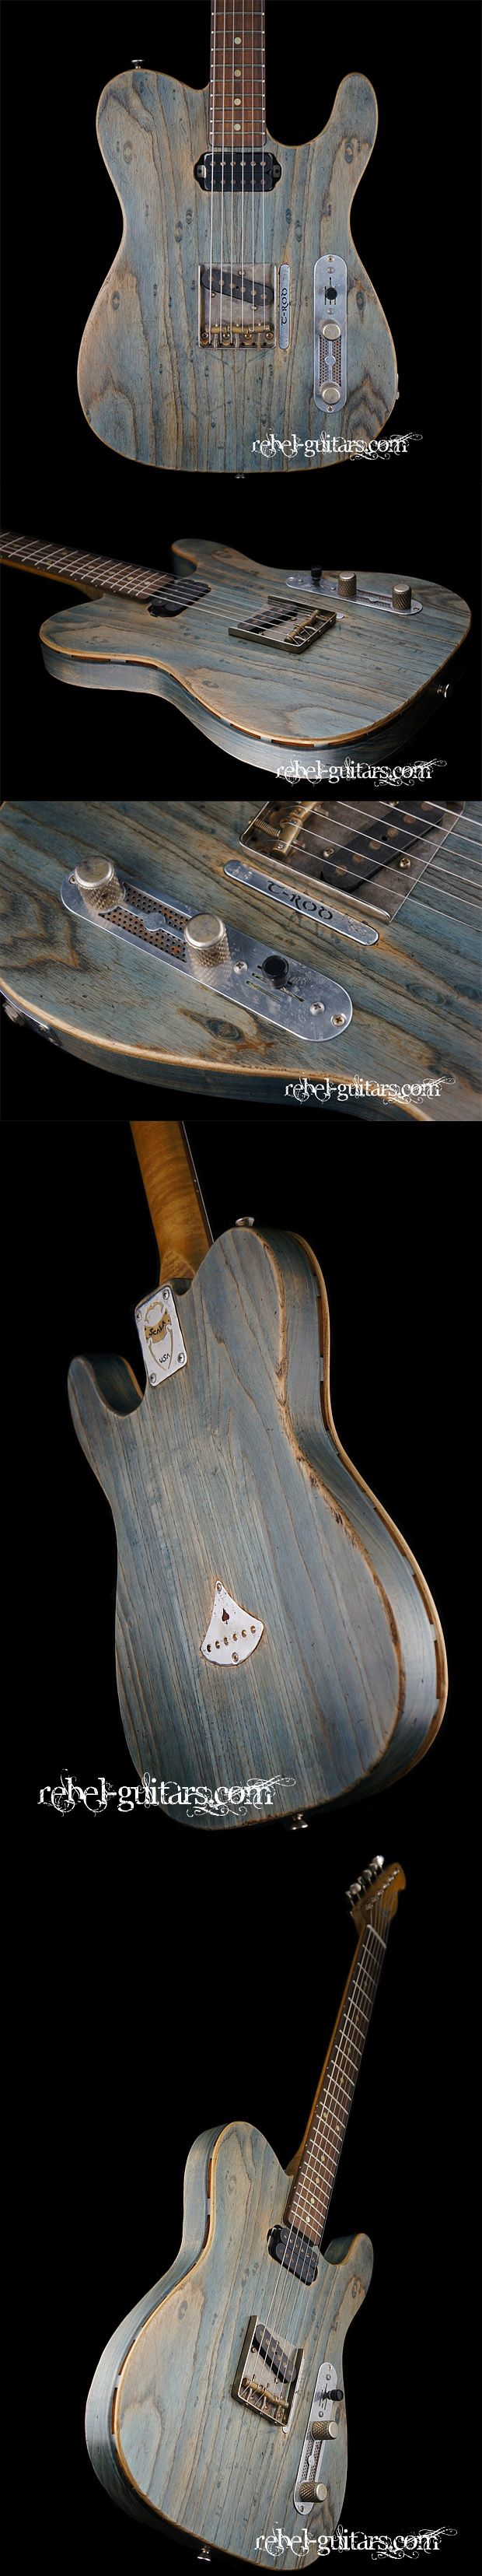 1000 images about guitars on pinterest